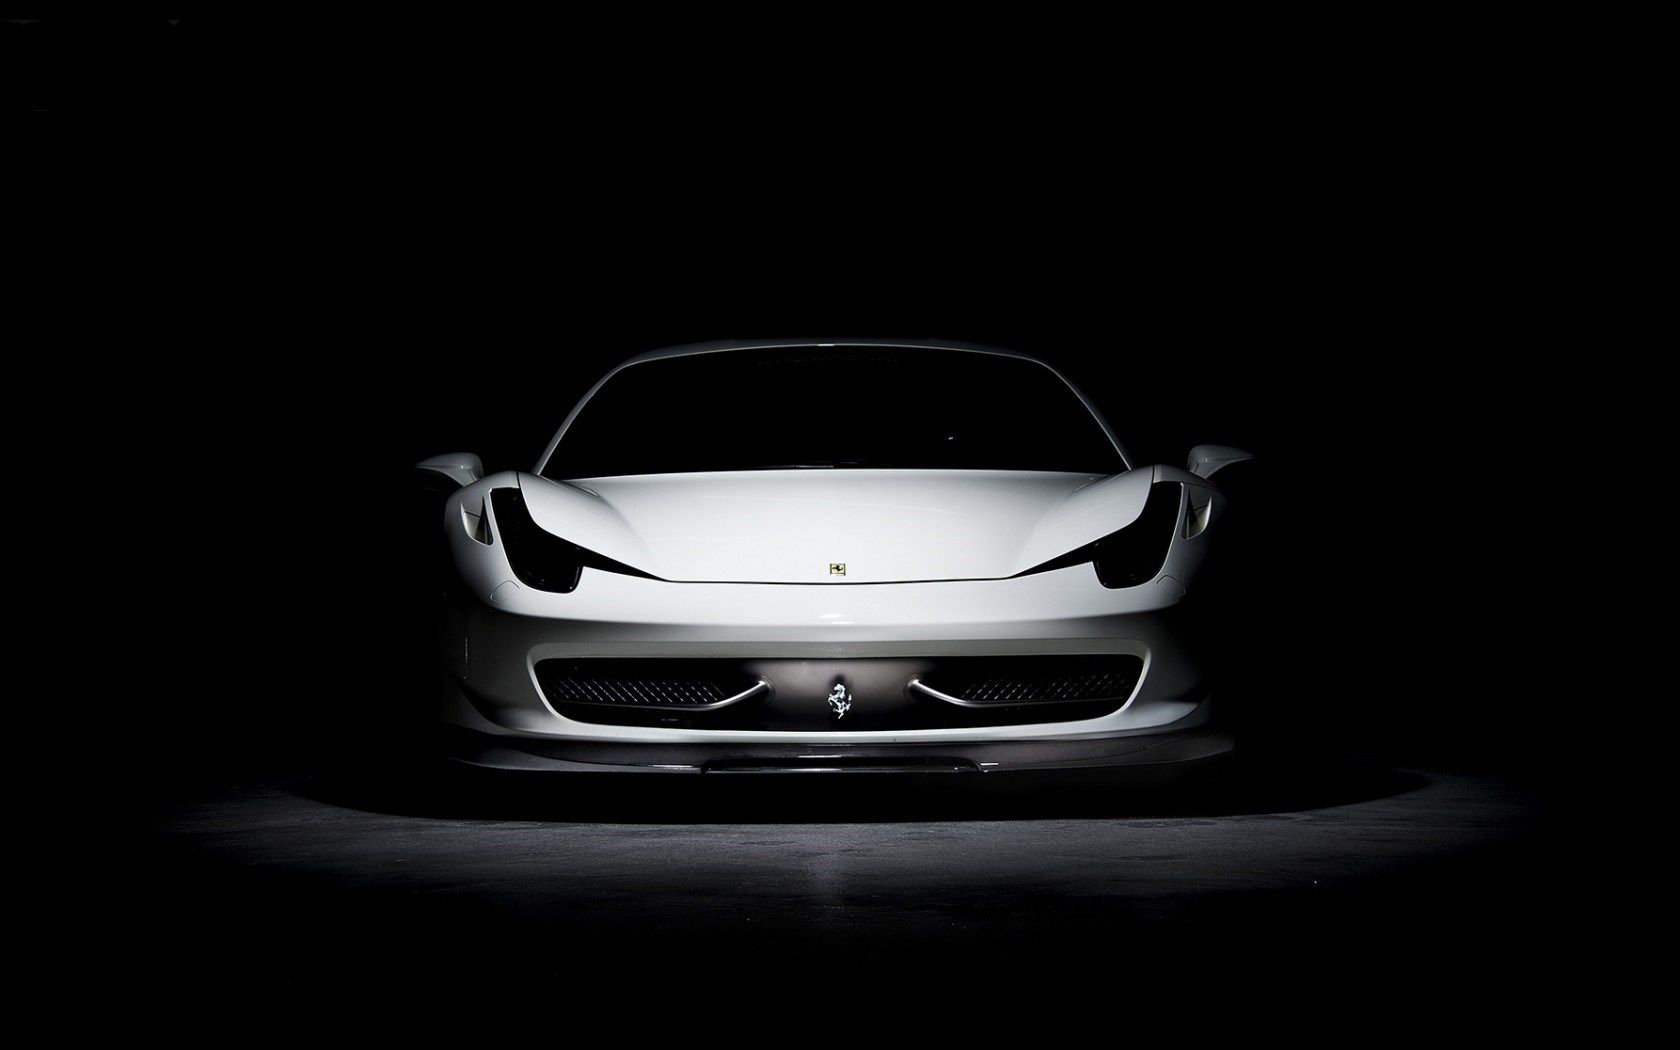 Ferrari Wallpapers And Backgrounds Ferrari 458 Italia White